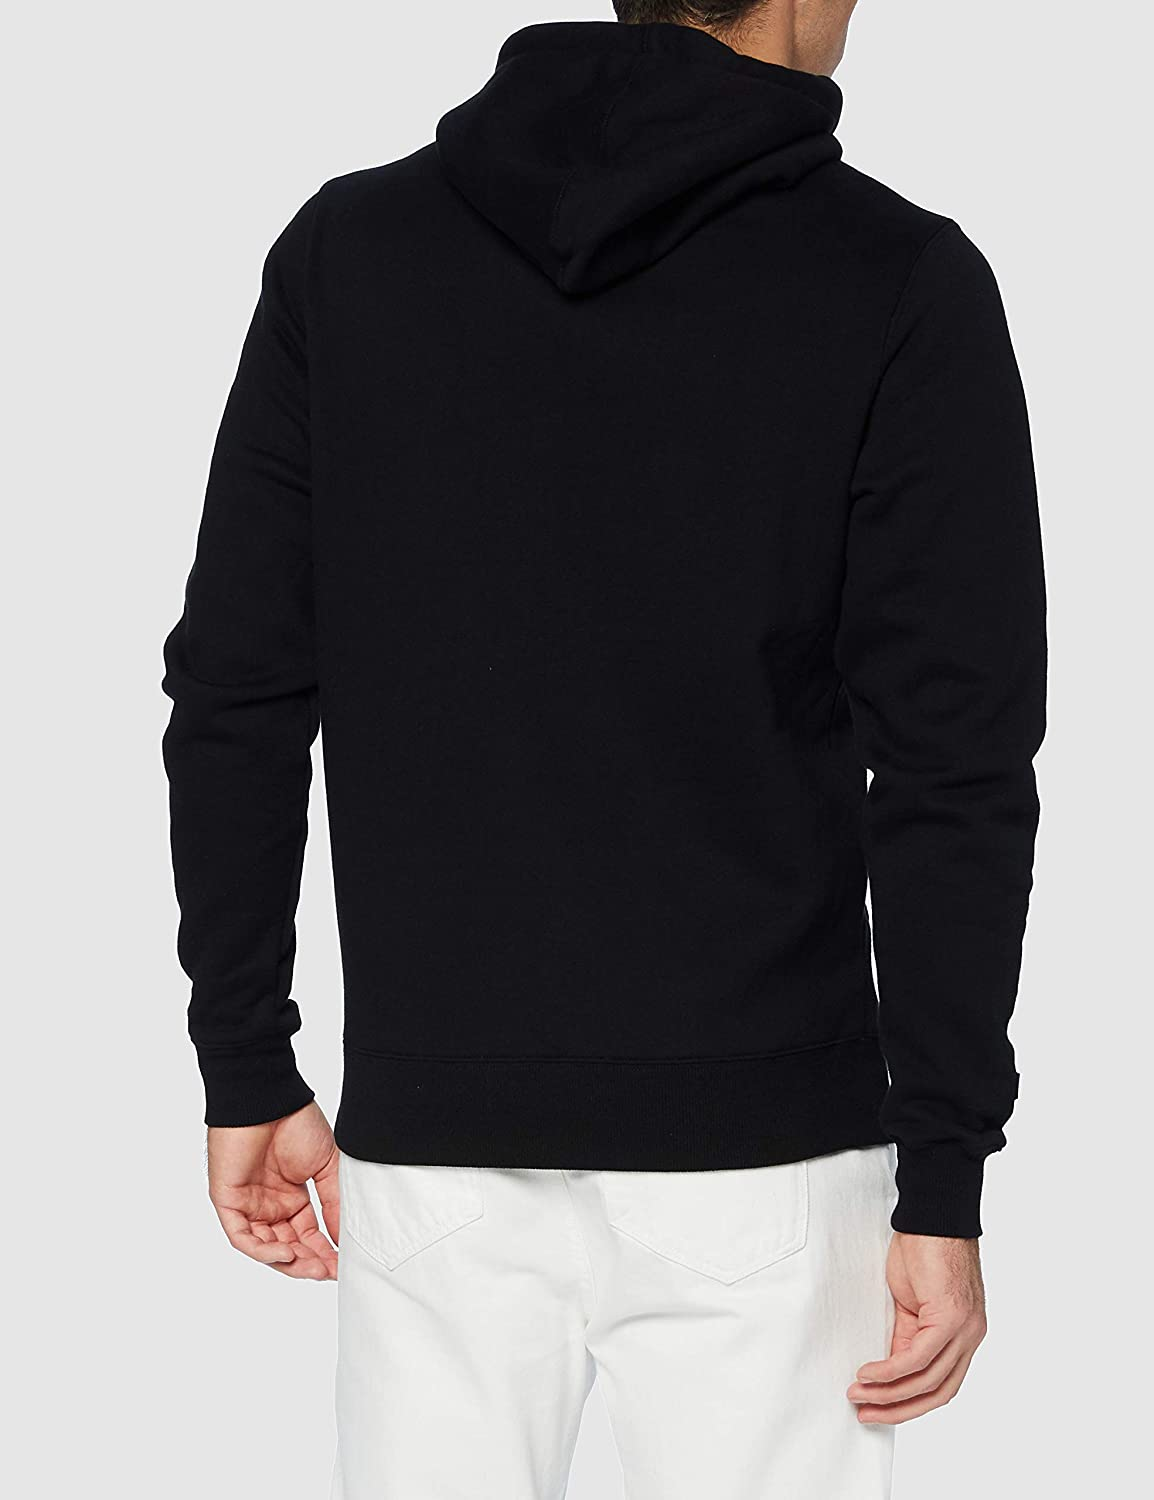 Cayler & Sons Herren Hoodies No Brainer Kapuzenpullover Black/Mc